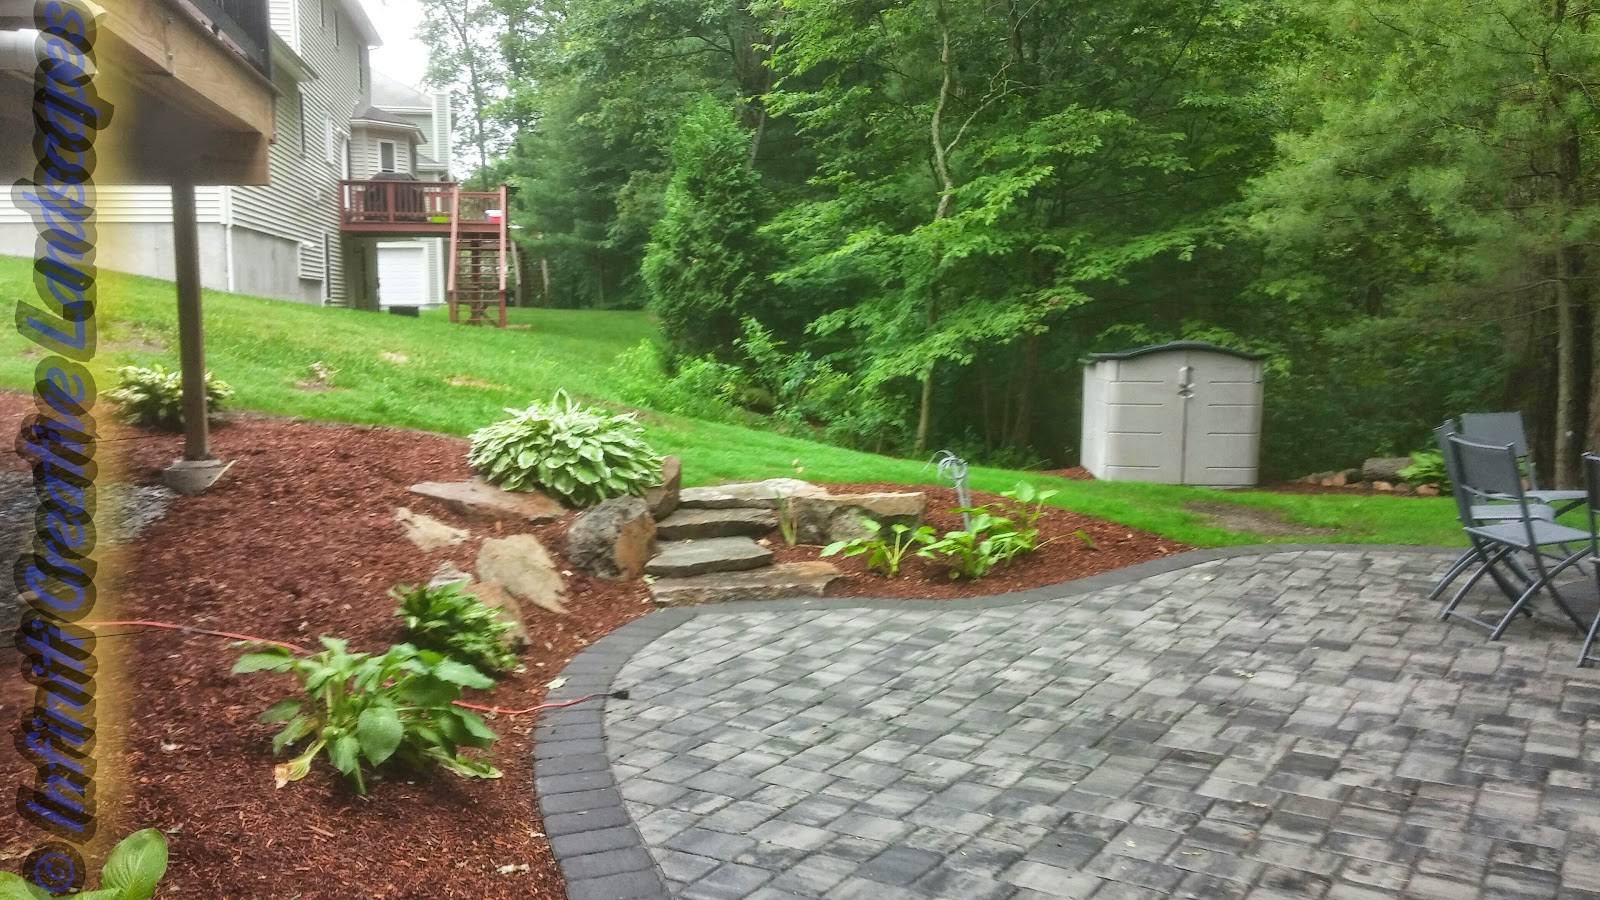 Infiniti properties creative landscape design recent for Landscape design jobs